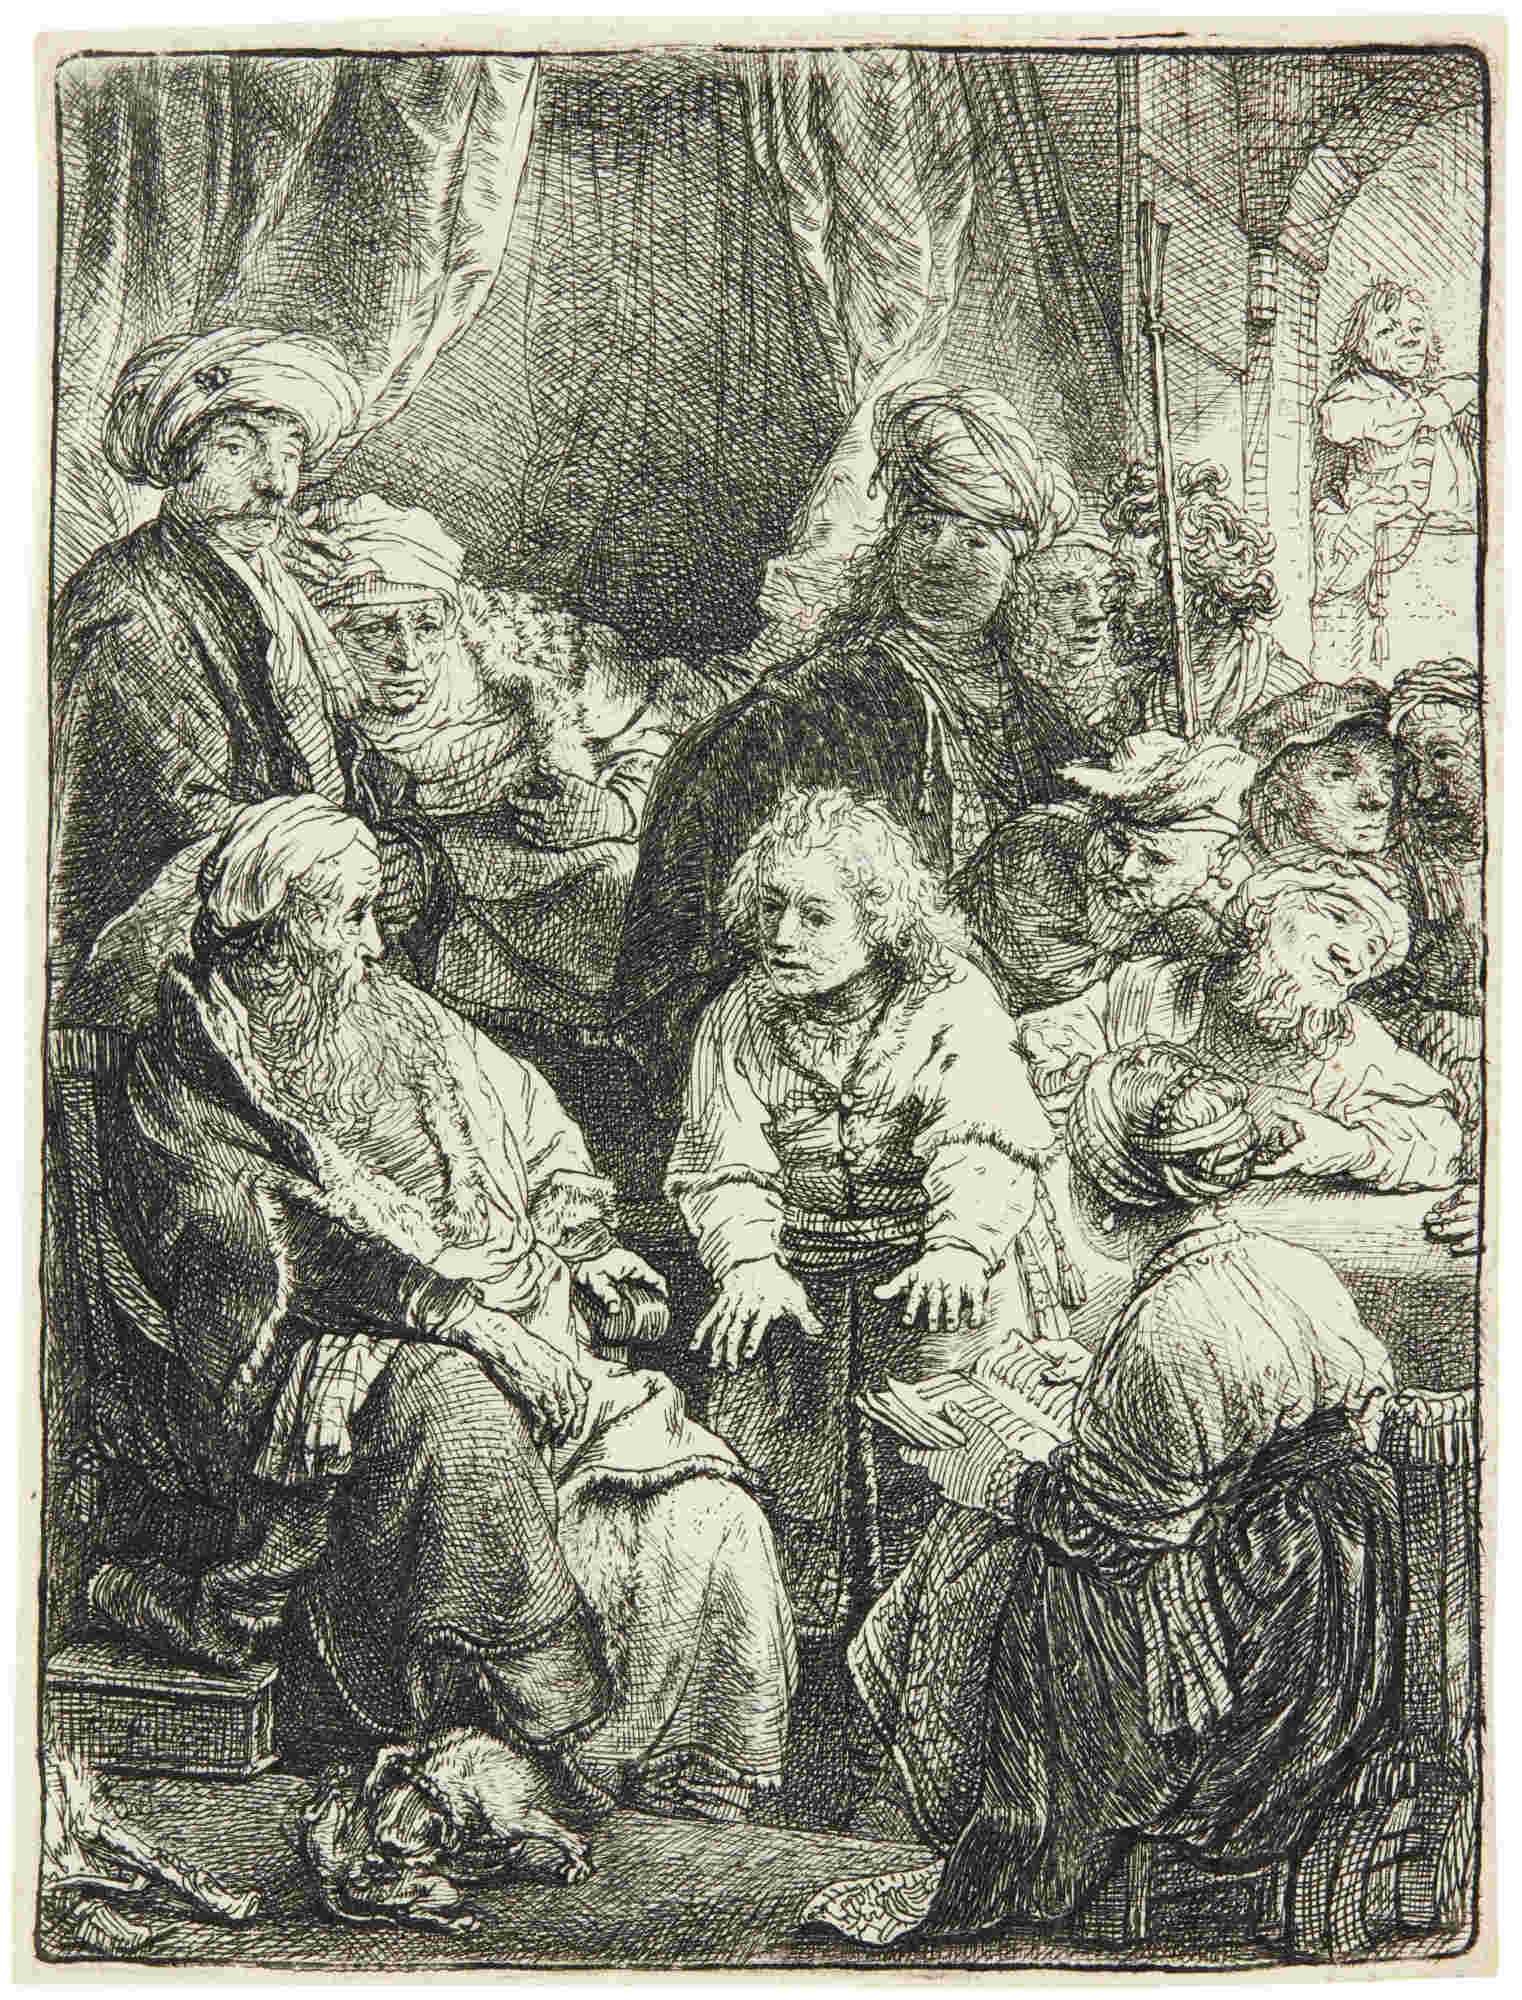 Rembrandt van Rijn-Joseph Telling His Dreams (Bartsch, Hollstein 37; New Hollstein 167; Hind 160)-1638